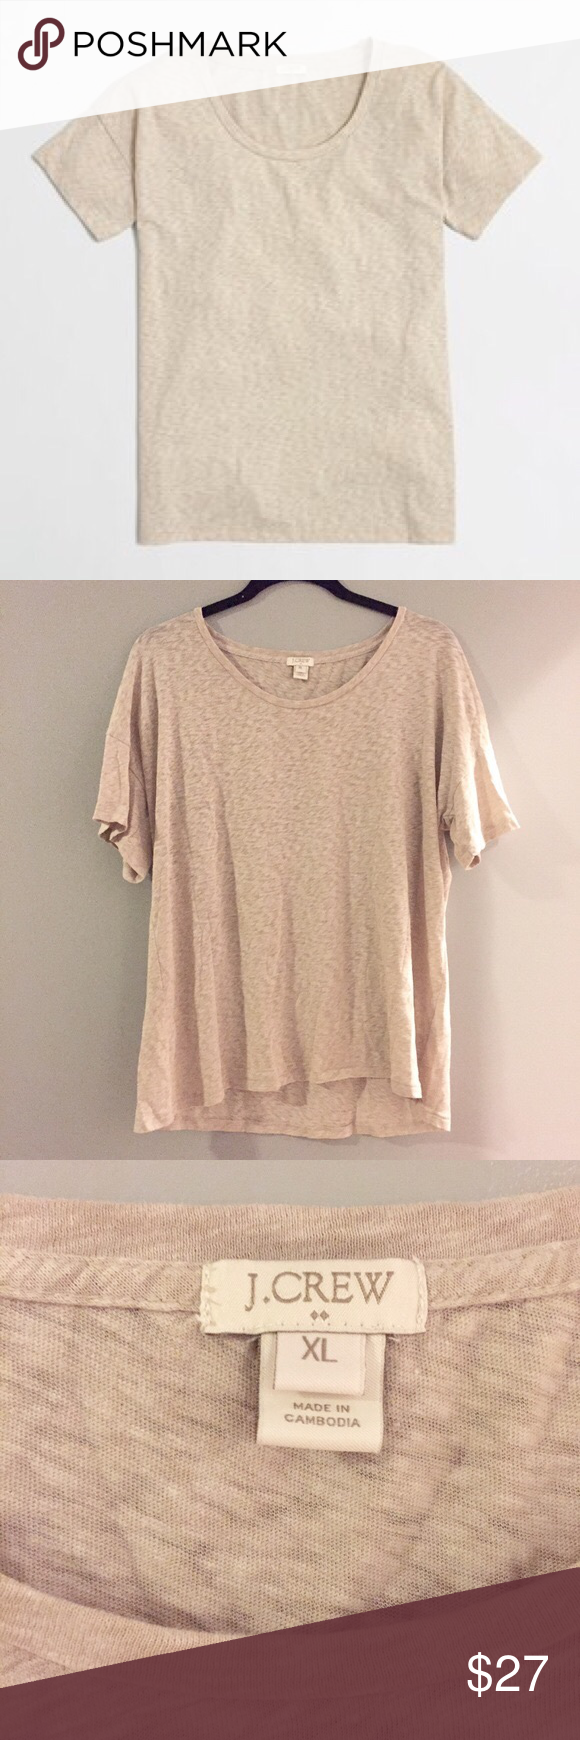 J.Crew Factory Cotton Drop-Shoulder Tee Beige EUC - ONLY WORN ONCE (a little to oversized than I expected - SIZE XL (will fit Large - XLarge) PERFECT CONDITION J. Crew Tops Tees - Short Sleeve